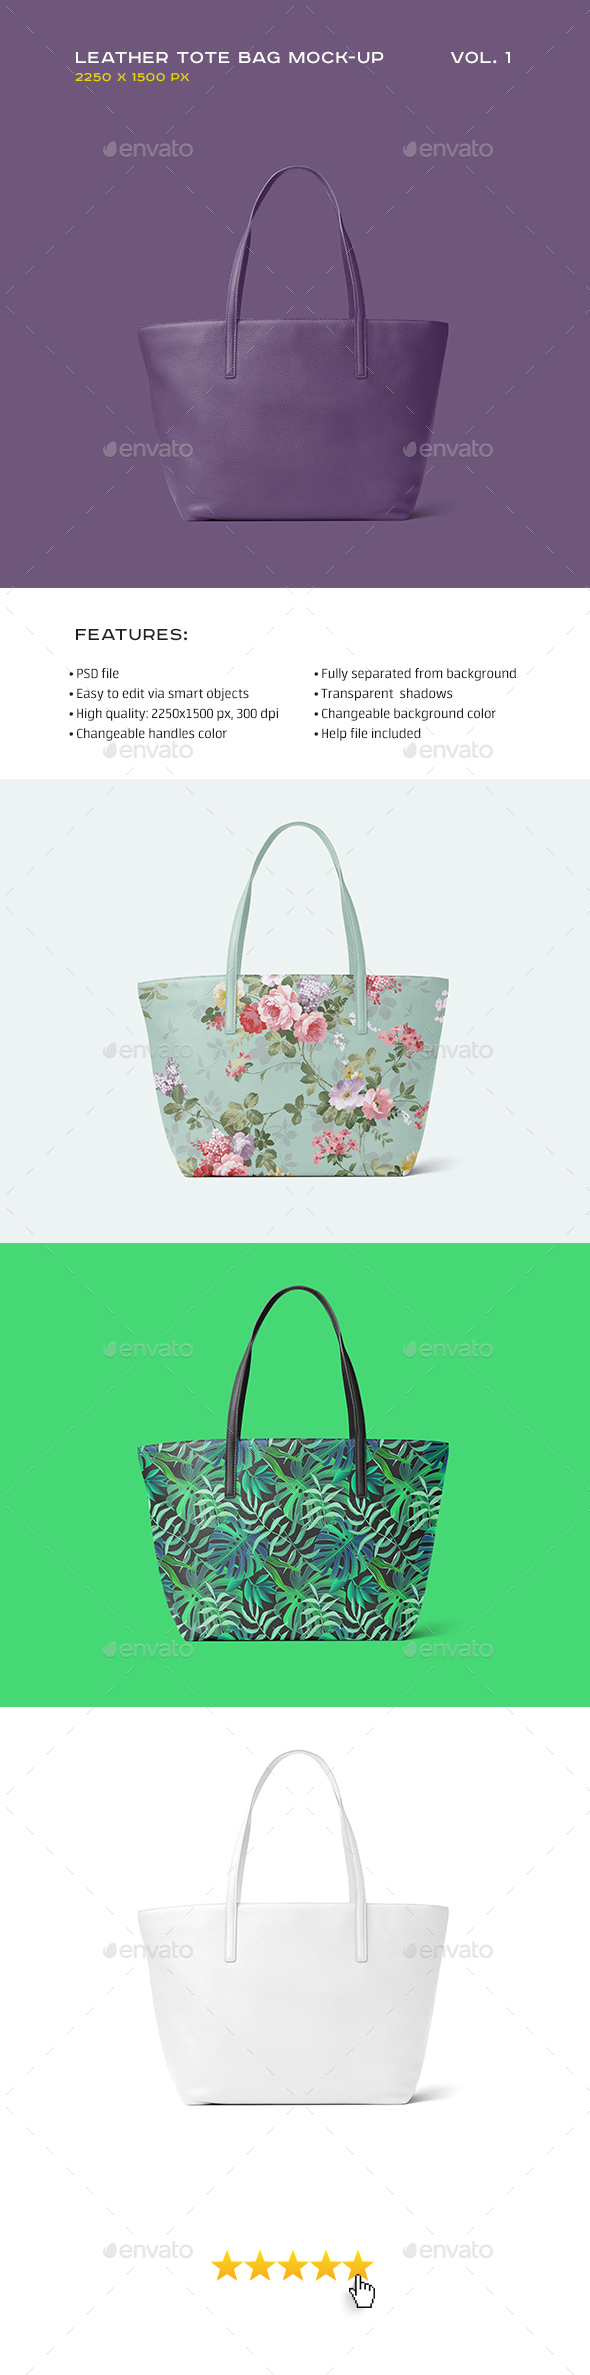 Leather Tote Bag Mock-up vol.1 - Miscellaneous Print